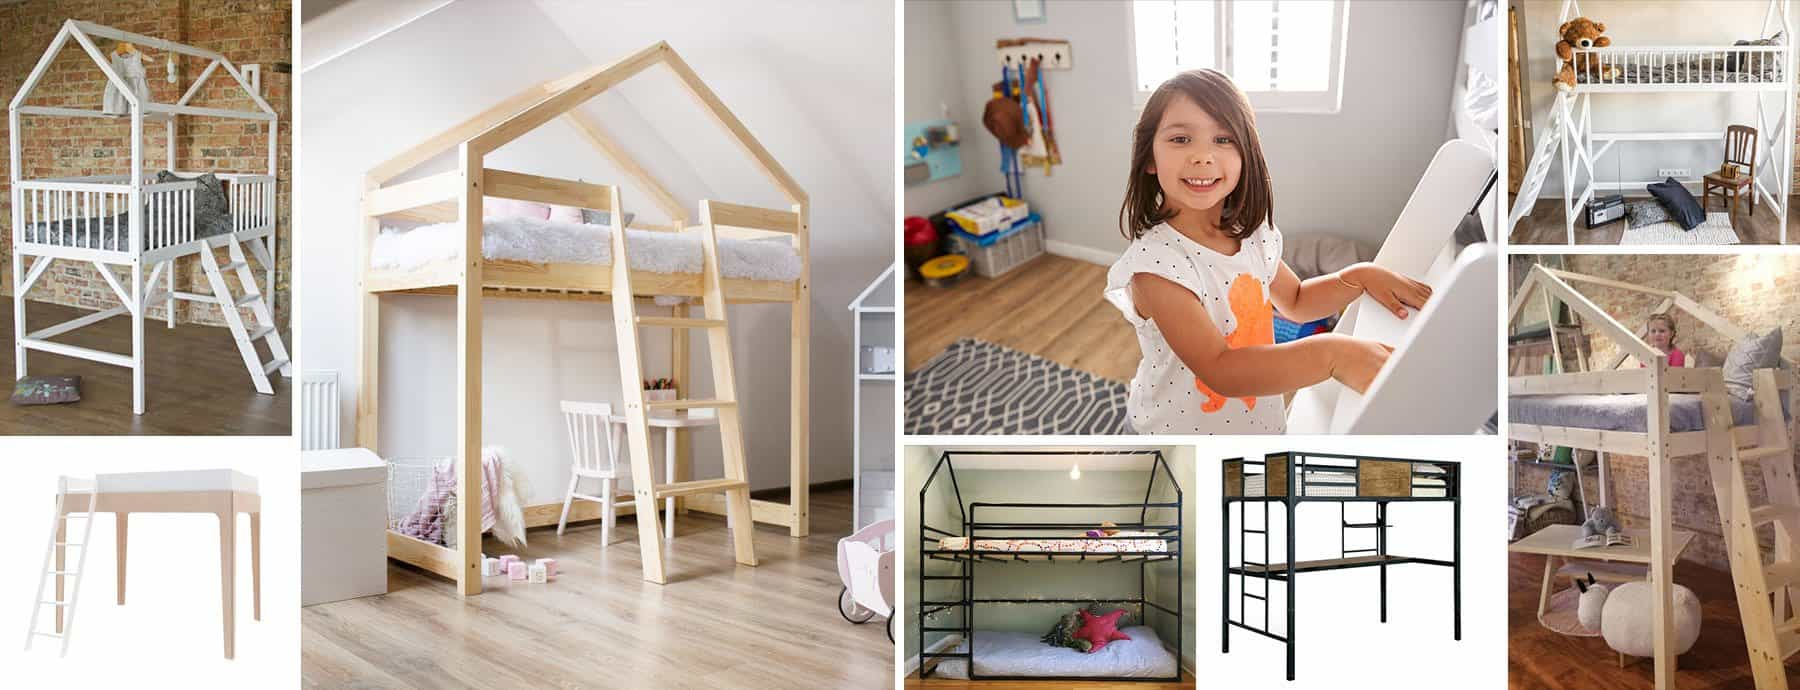 17 Best Loft Beds To Buy Loft Beds Buying Guide 2020 Nursery Kid S Room Decor Ideas My Sleepy Monkey